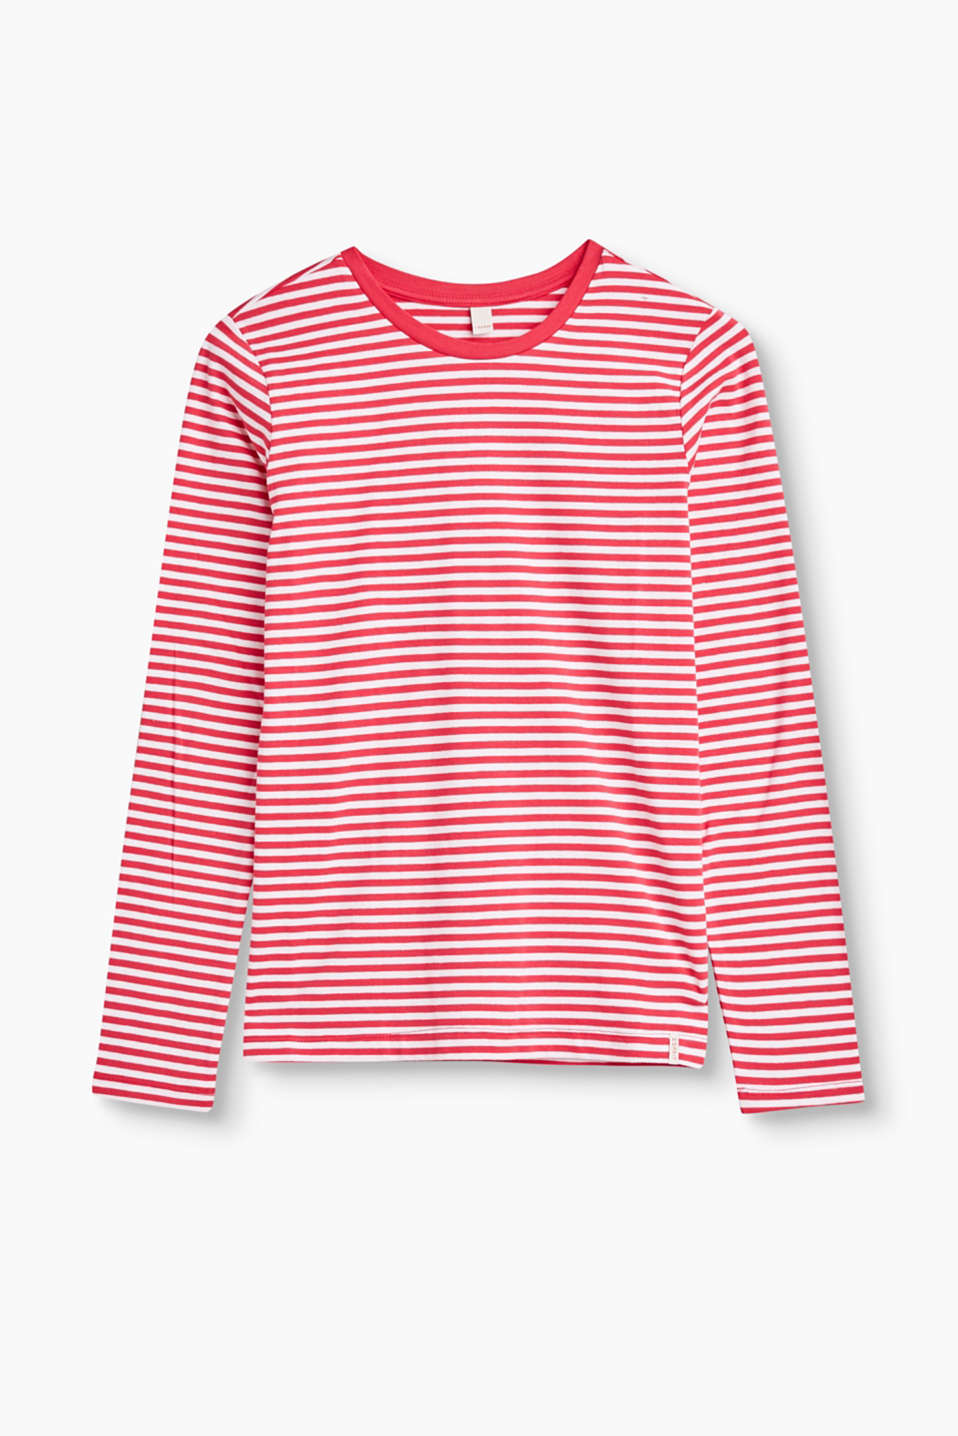 Esprit - Striped long sleeve jersey top